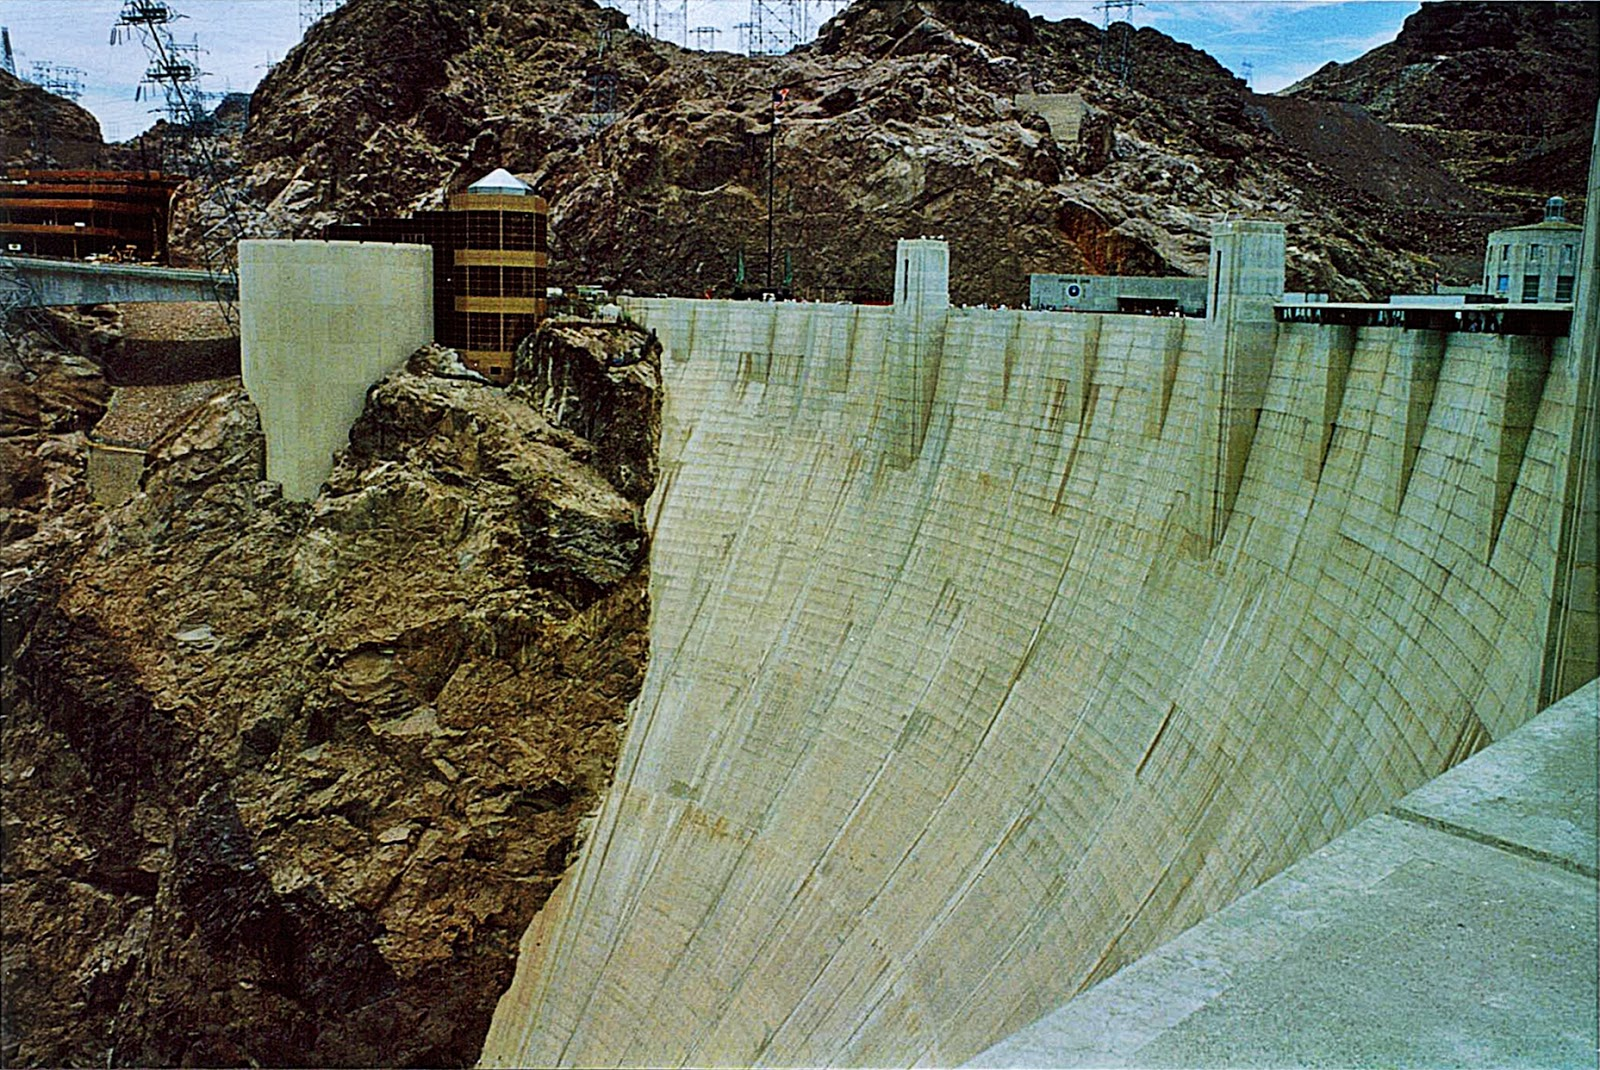 hoover dam overview An overview of hoover dam construction history with links to hoover dam information and articles of facts and human-interest insight.